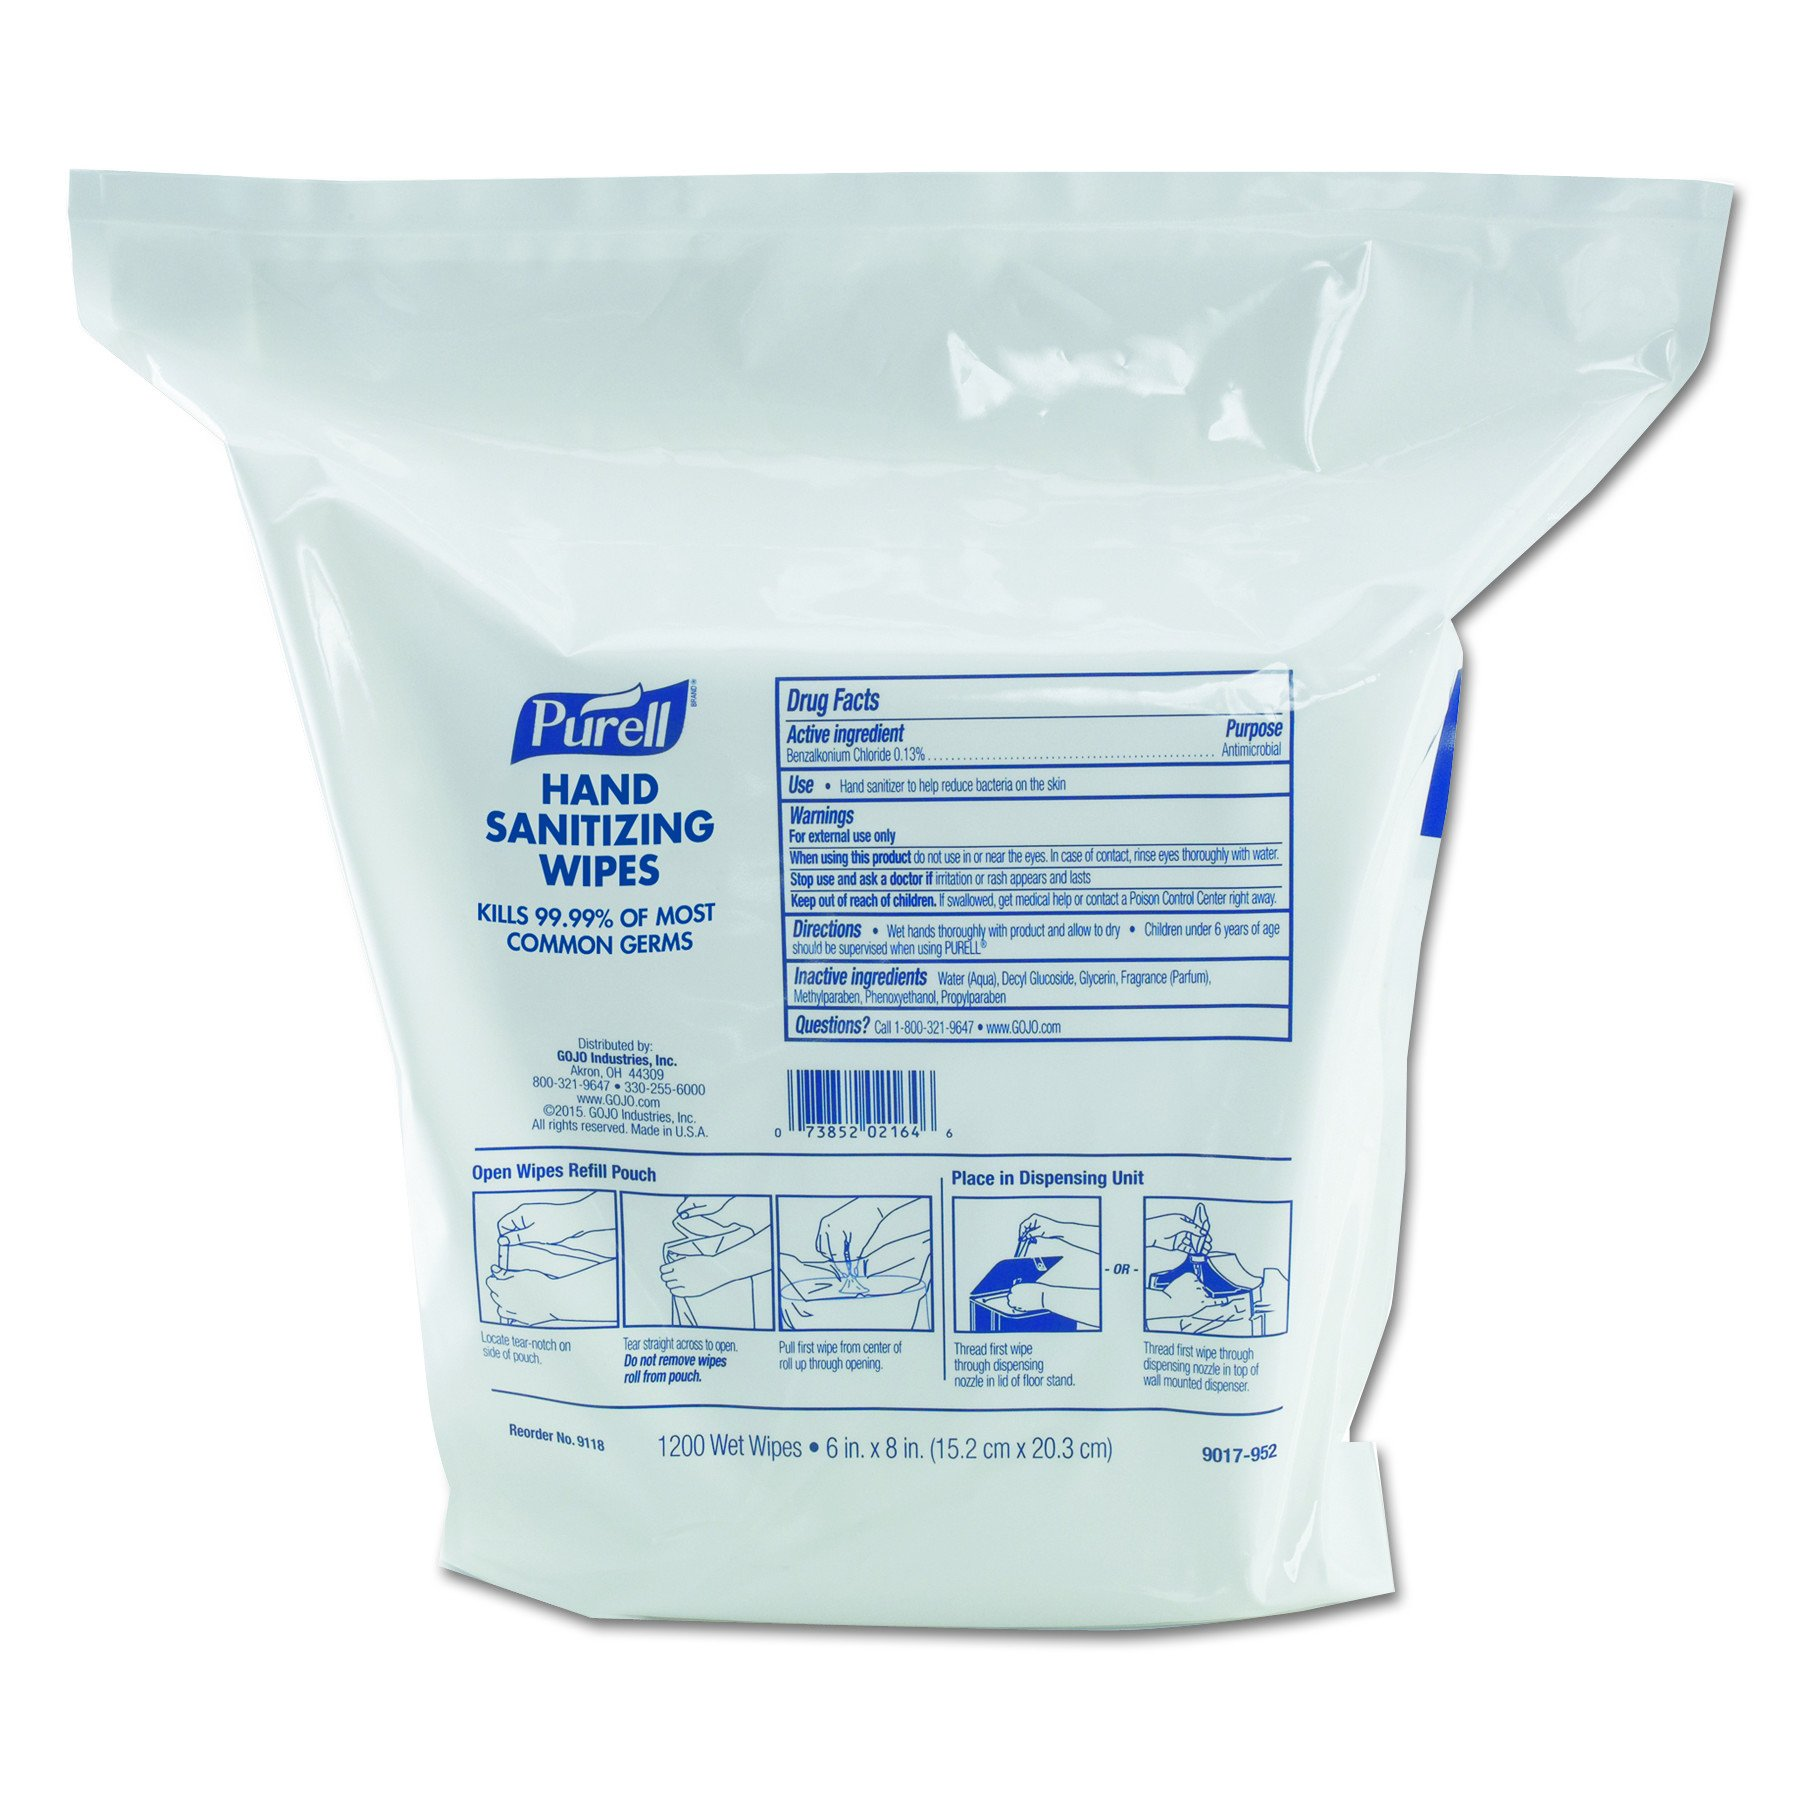 PURELL 911802 Hand Sanitizing Wipes, 6'' x 8'', White, 1200/Refill Pouch (Case of 2 Refills)